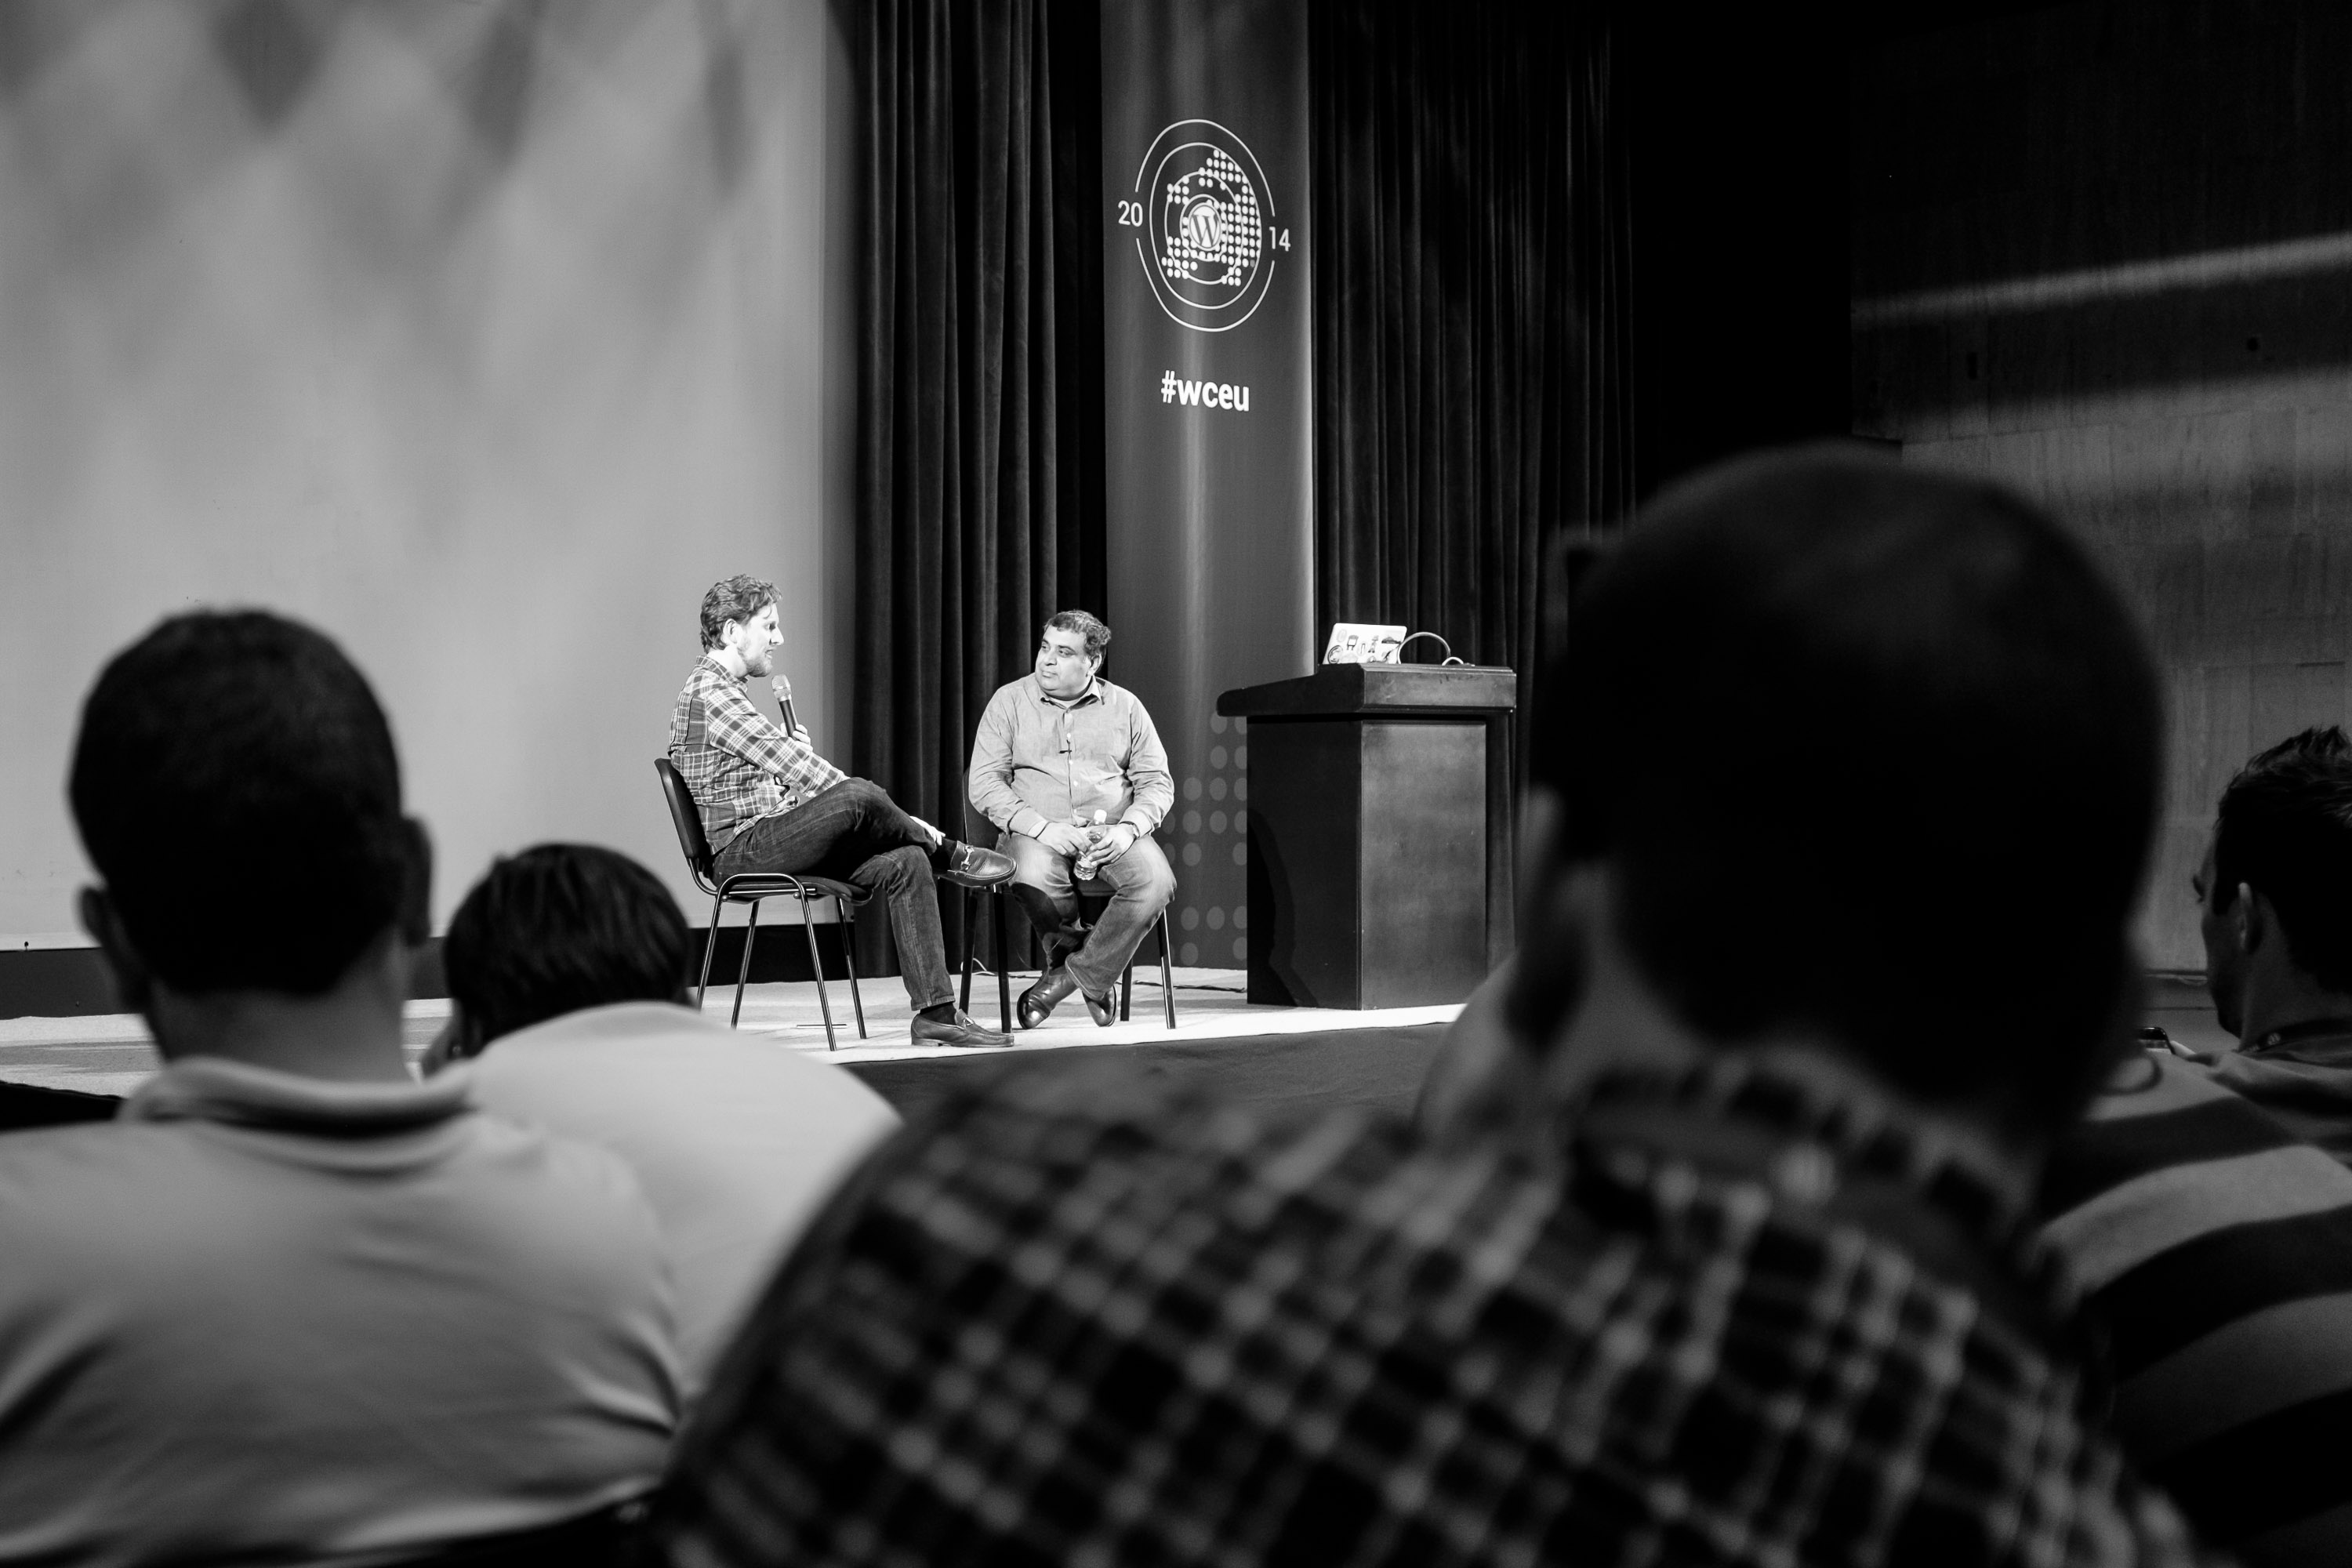 Matt Mullenweg and Om Malik during the Q&A session at WordCamp Europe 2014